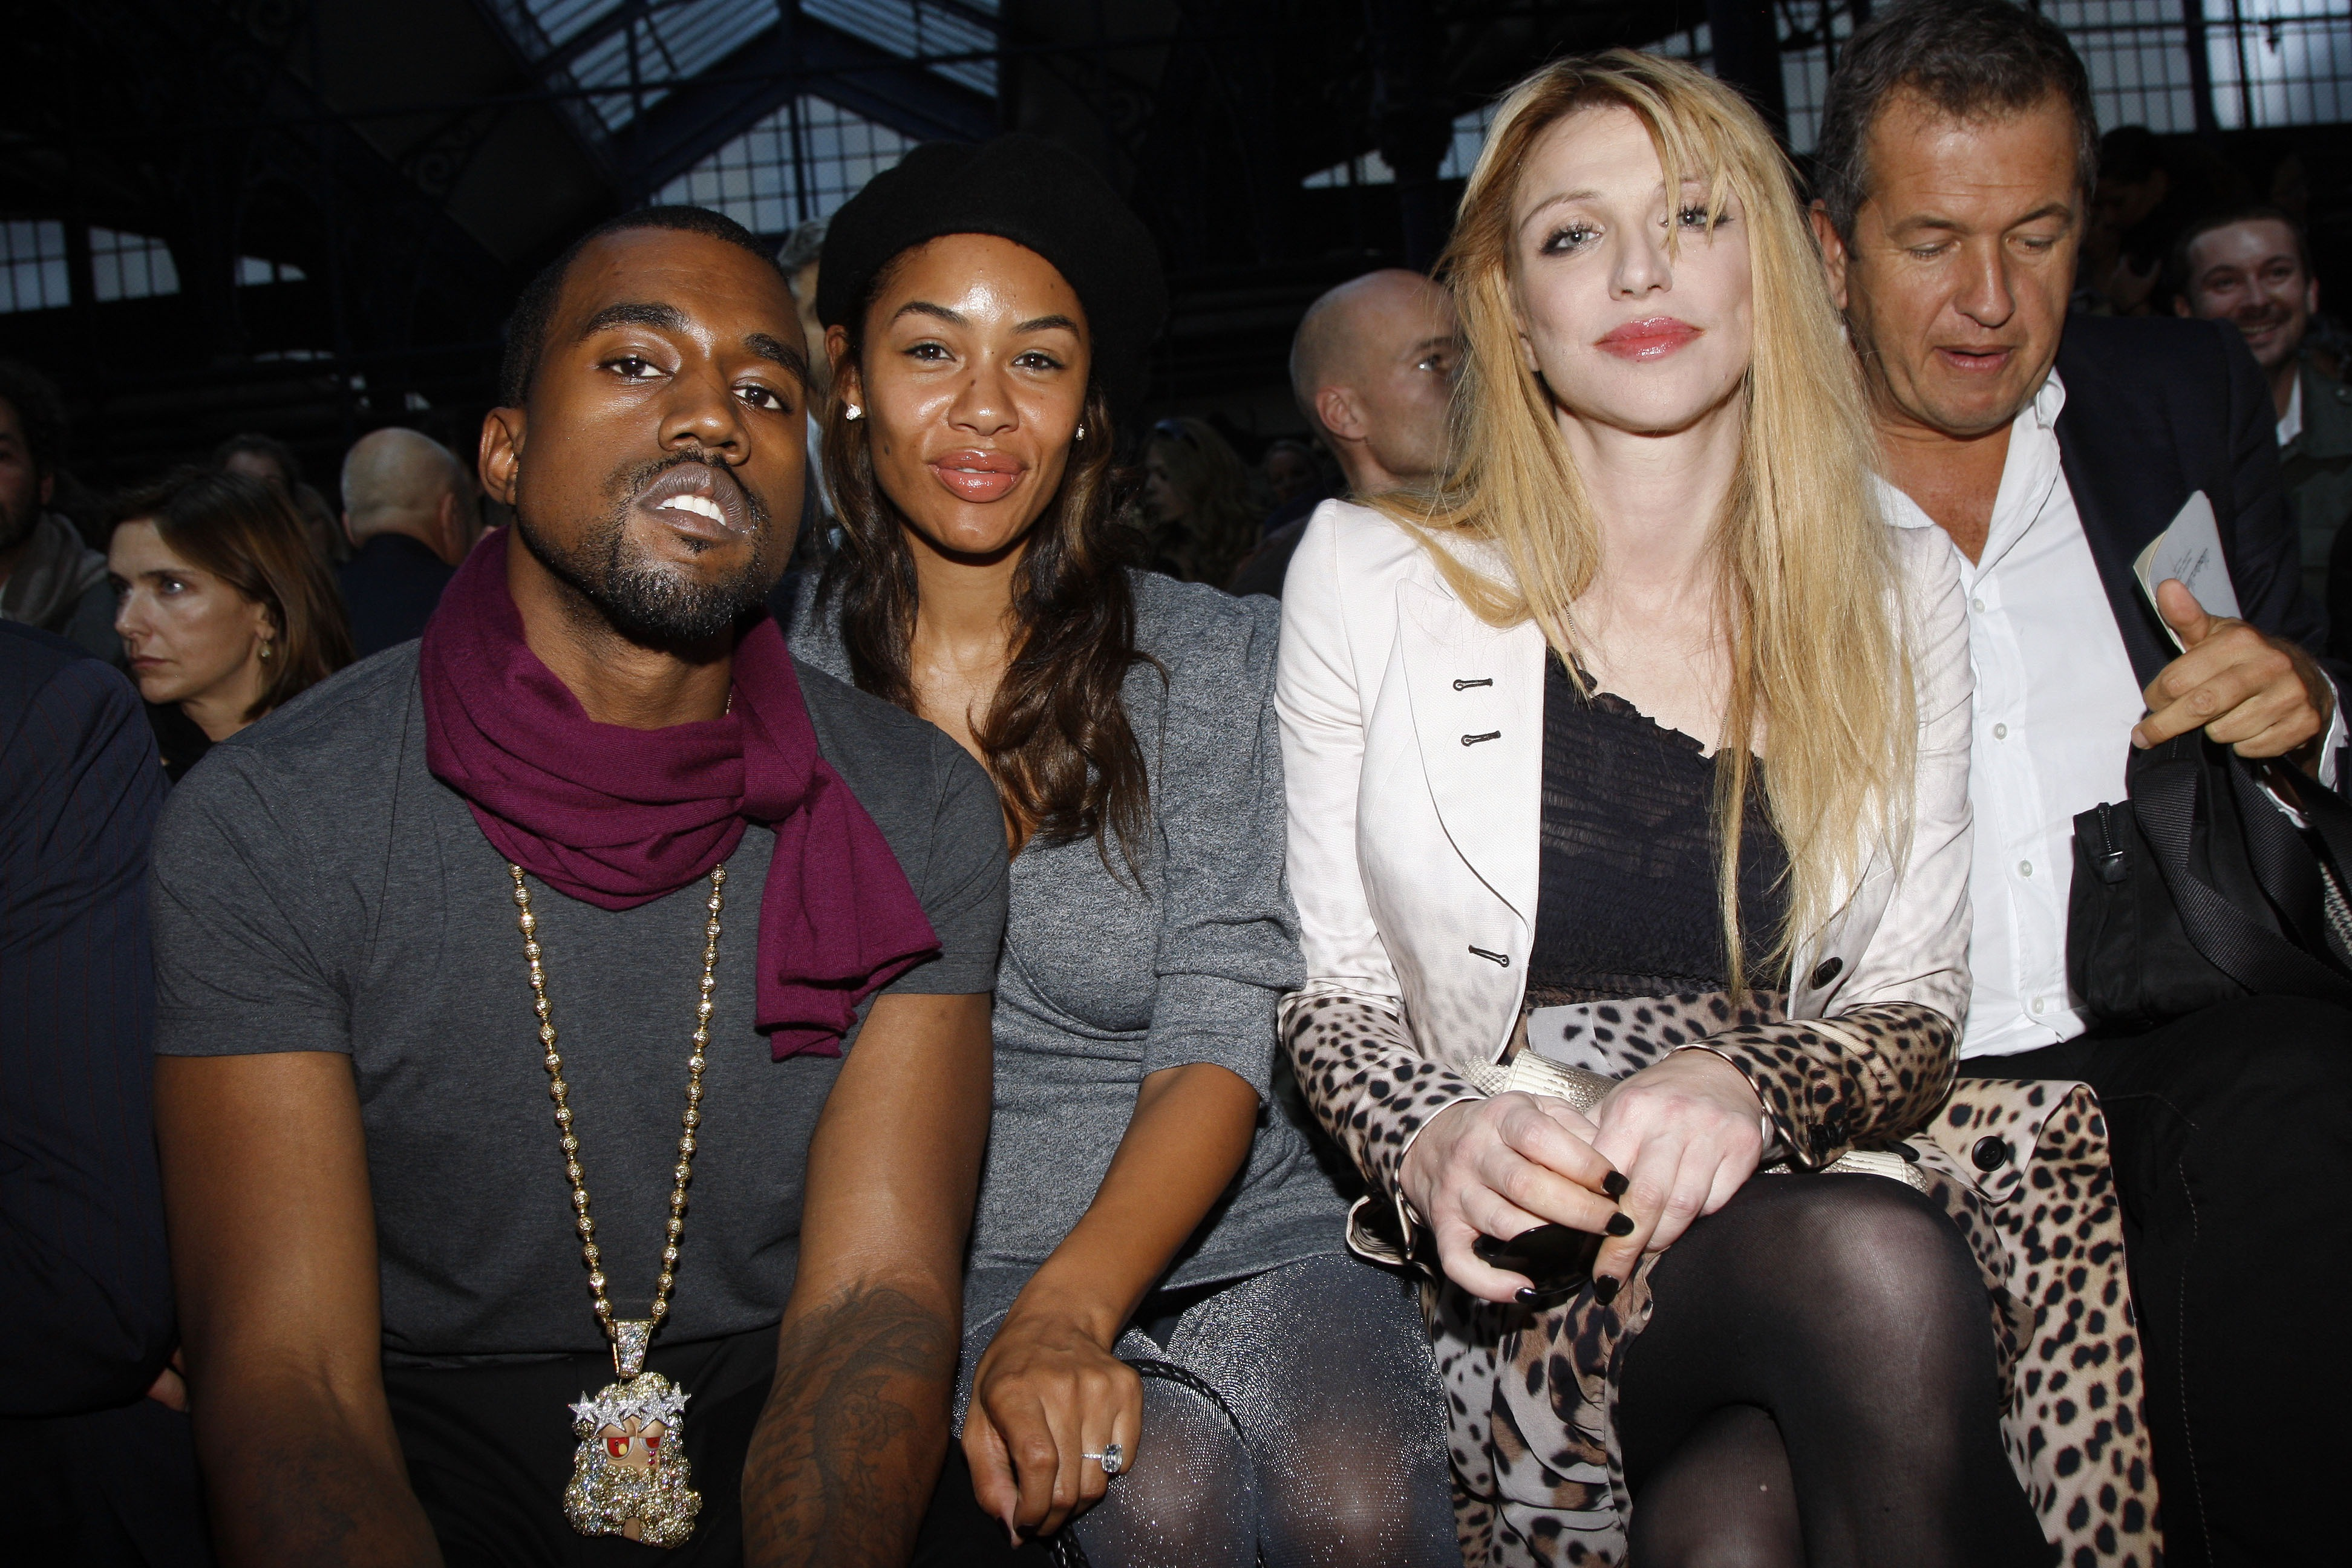 Kanye West, Alexis Phifer, Courtney Love and Mario Testino at Givenchy Spring/Summer 2008 runway show.